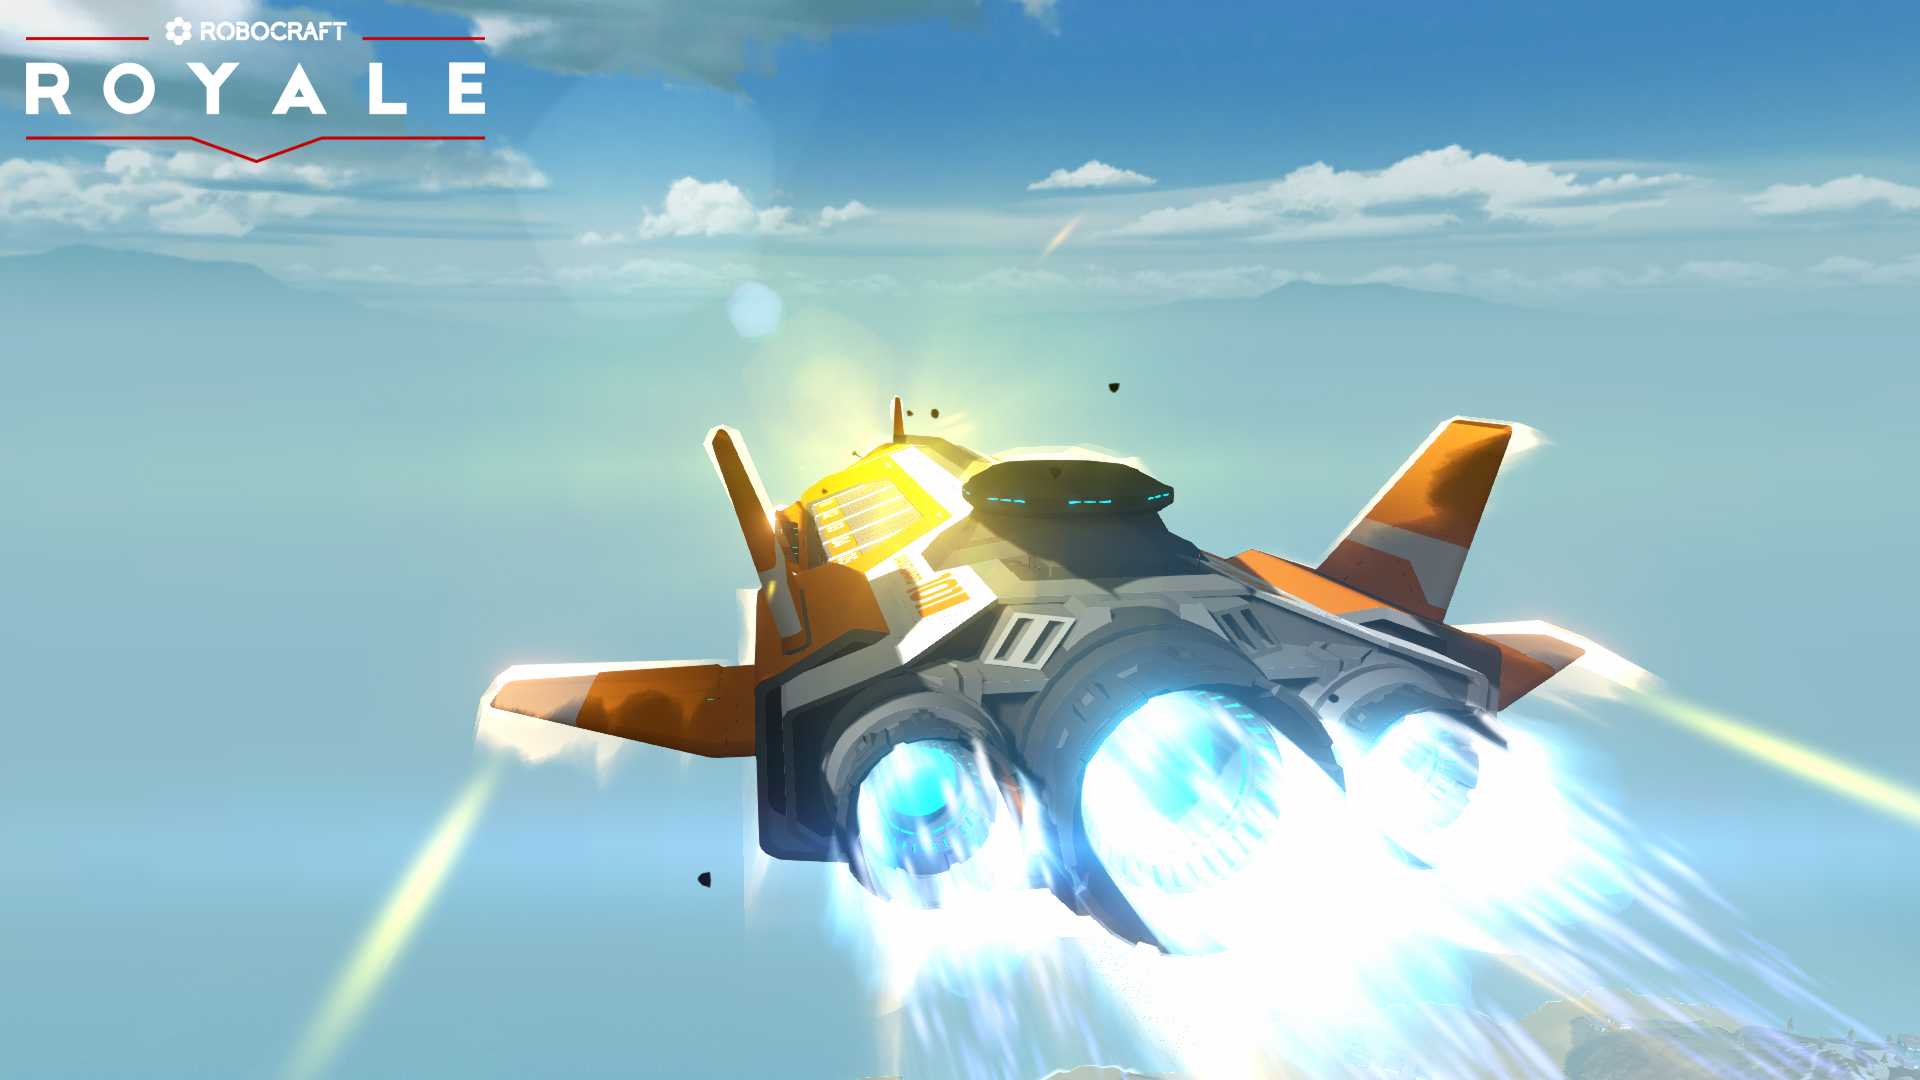 ROBOCRAFT ROYALE - Join our last free alpha test now news ...